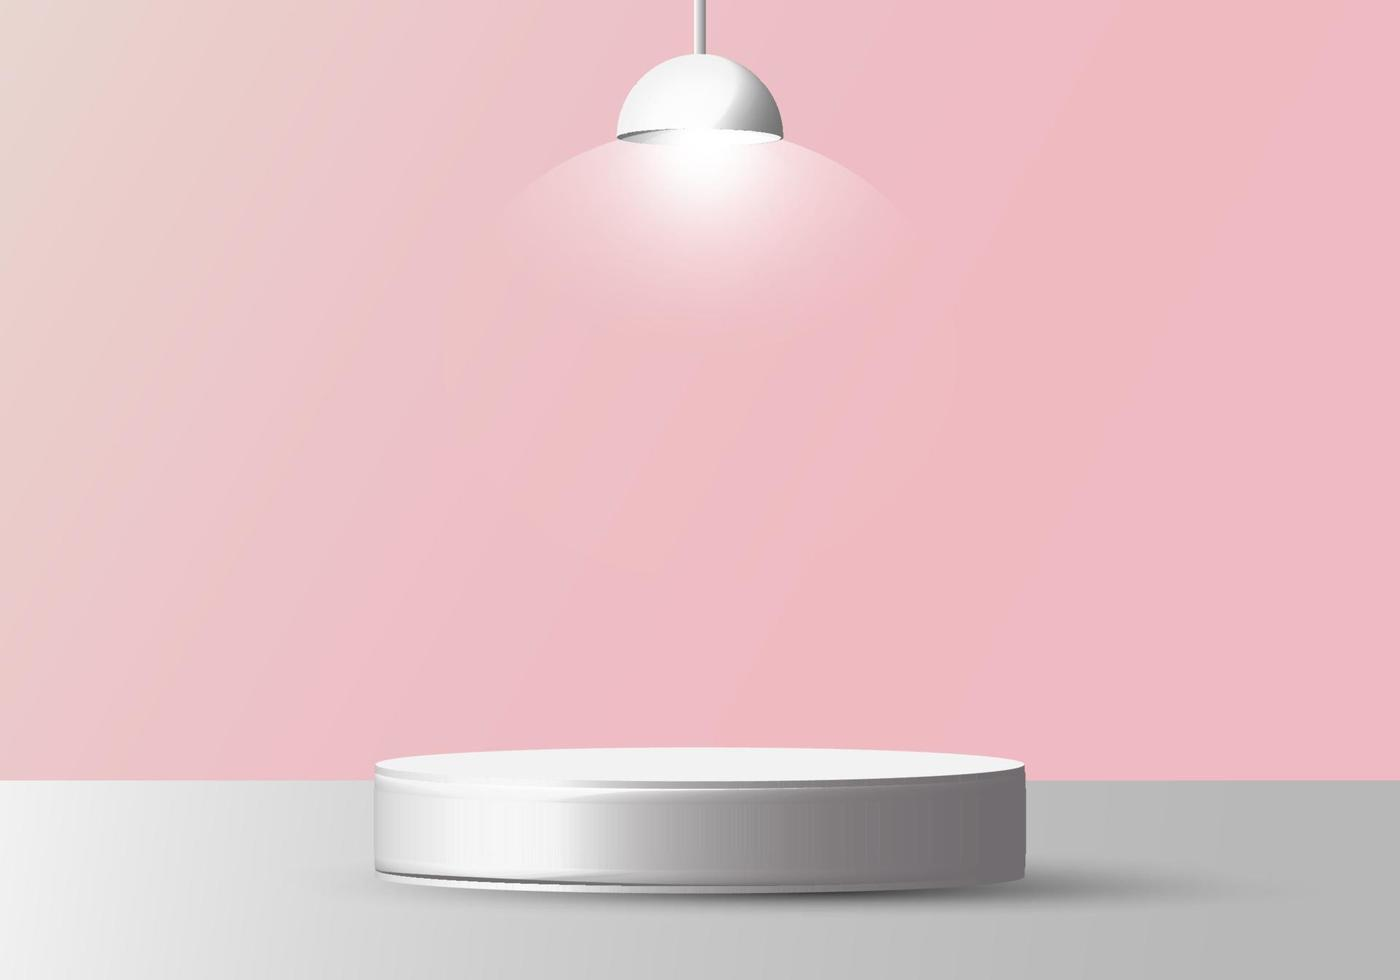 3D realistic empty white round pedestal mockup with lamp on soft pink background vector